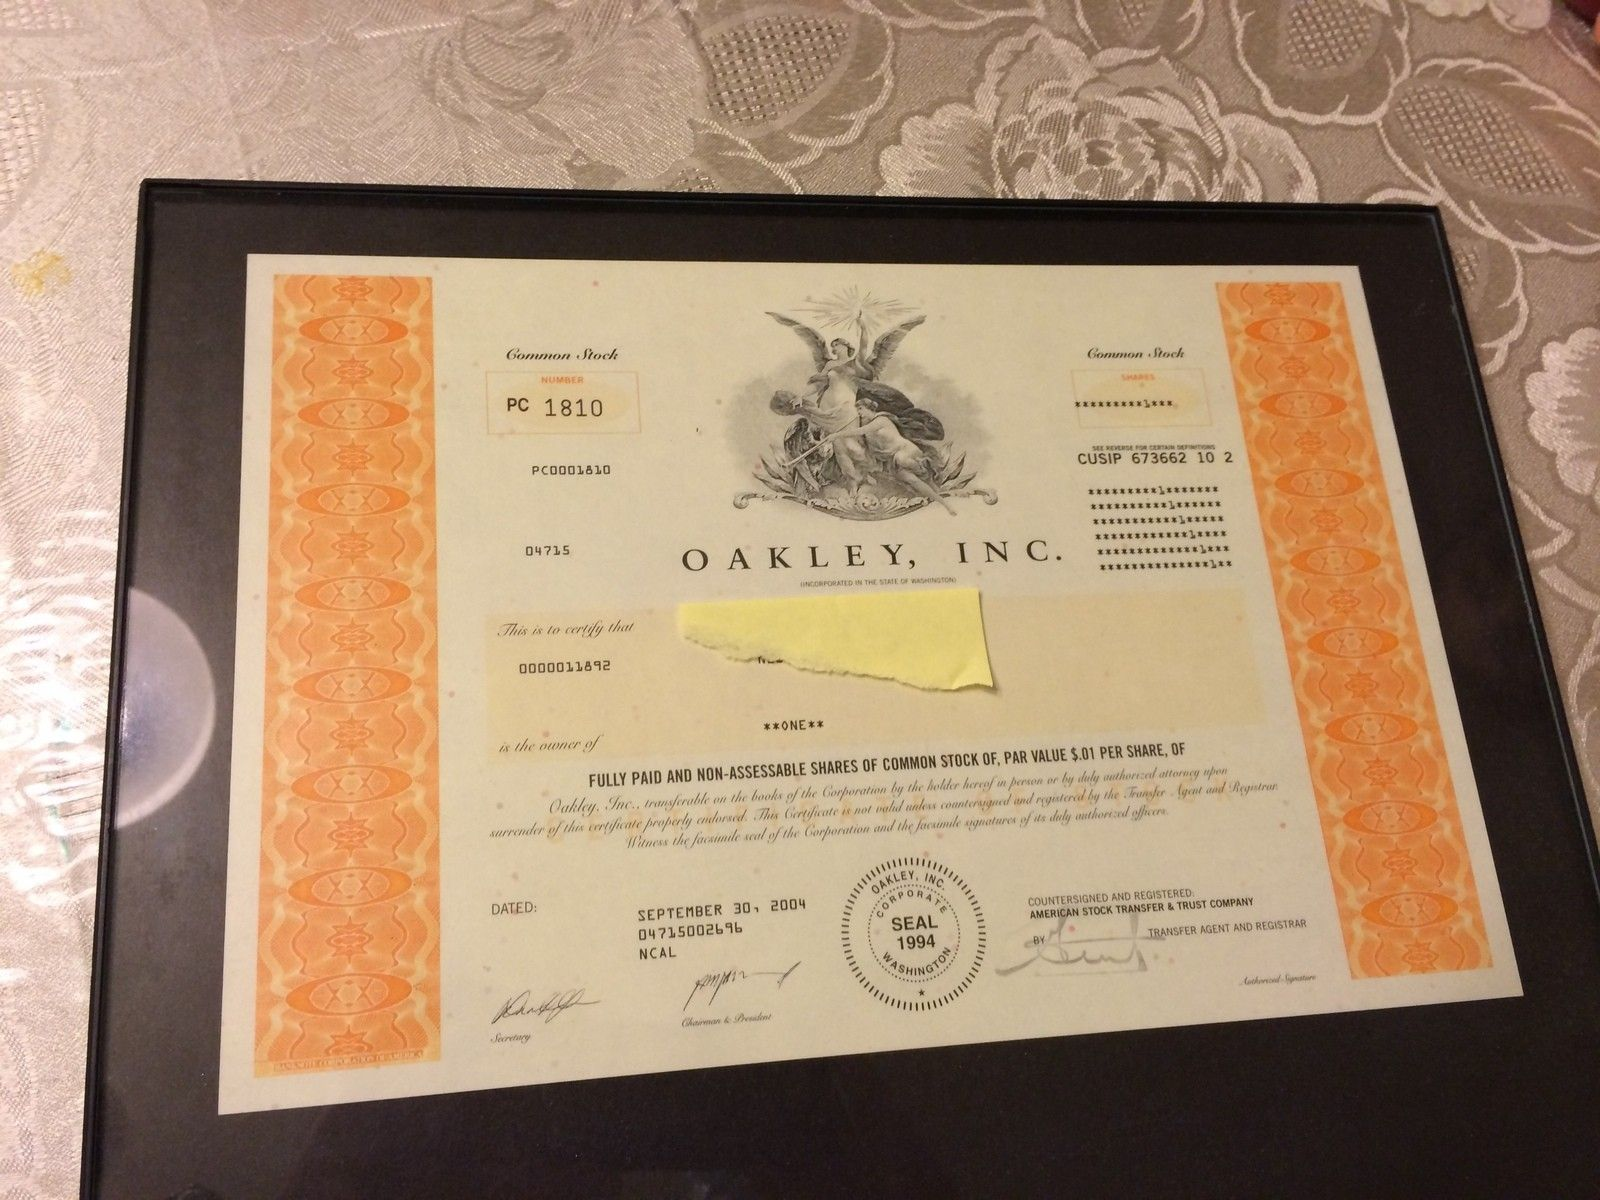 Authentic Oakley Inc Stock Certificate - photo.JPG